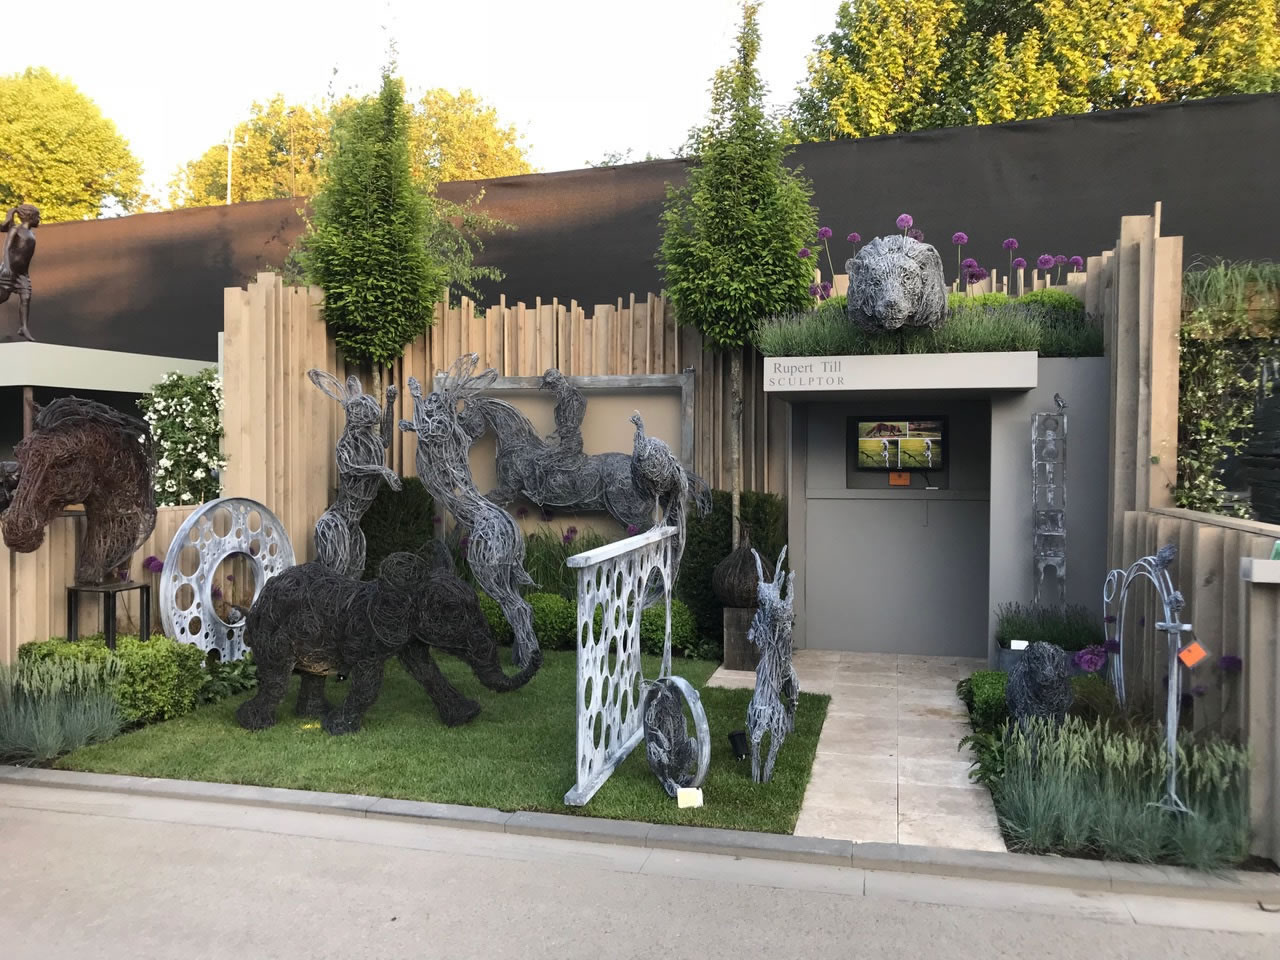 Come and visit me in my usual spot on Stand RGB8 at this year's Chelsea Flower Show